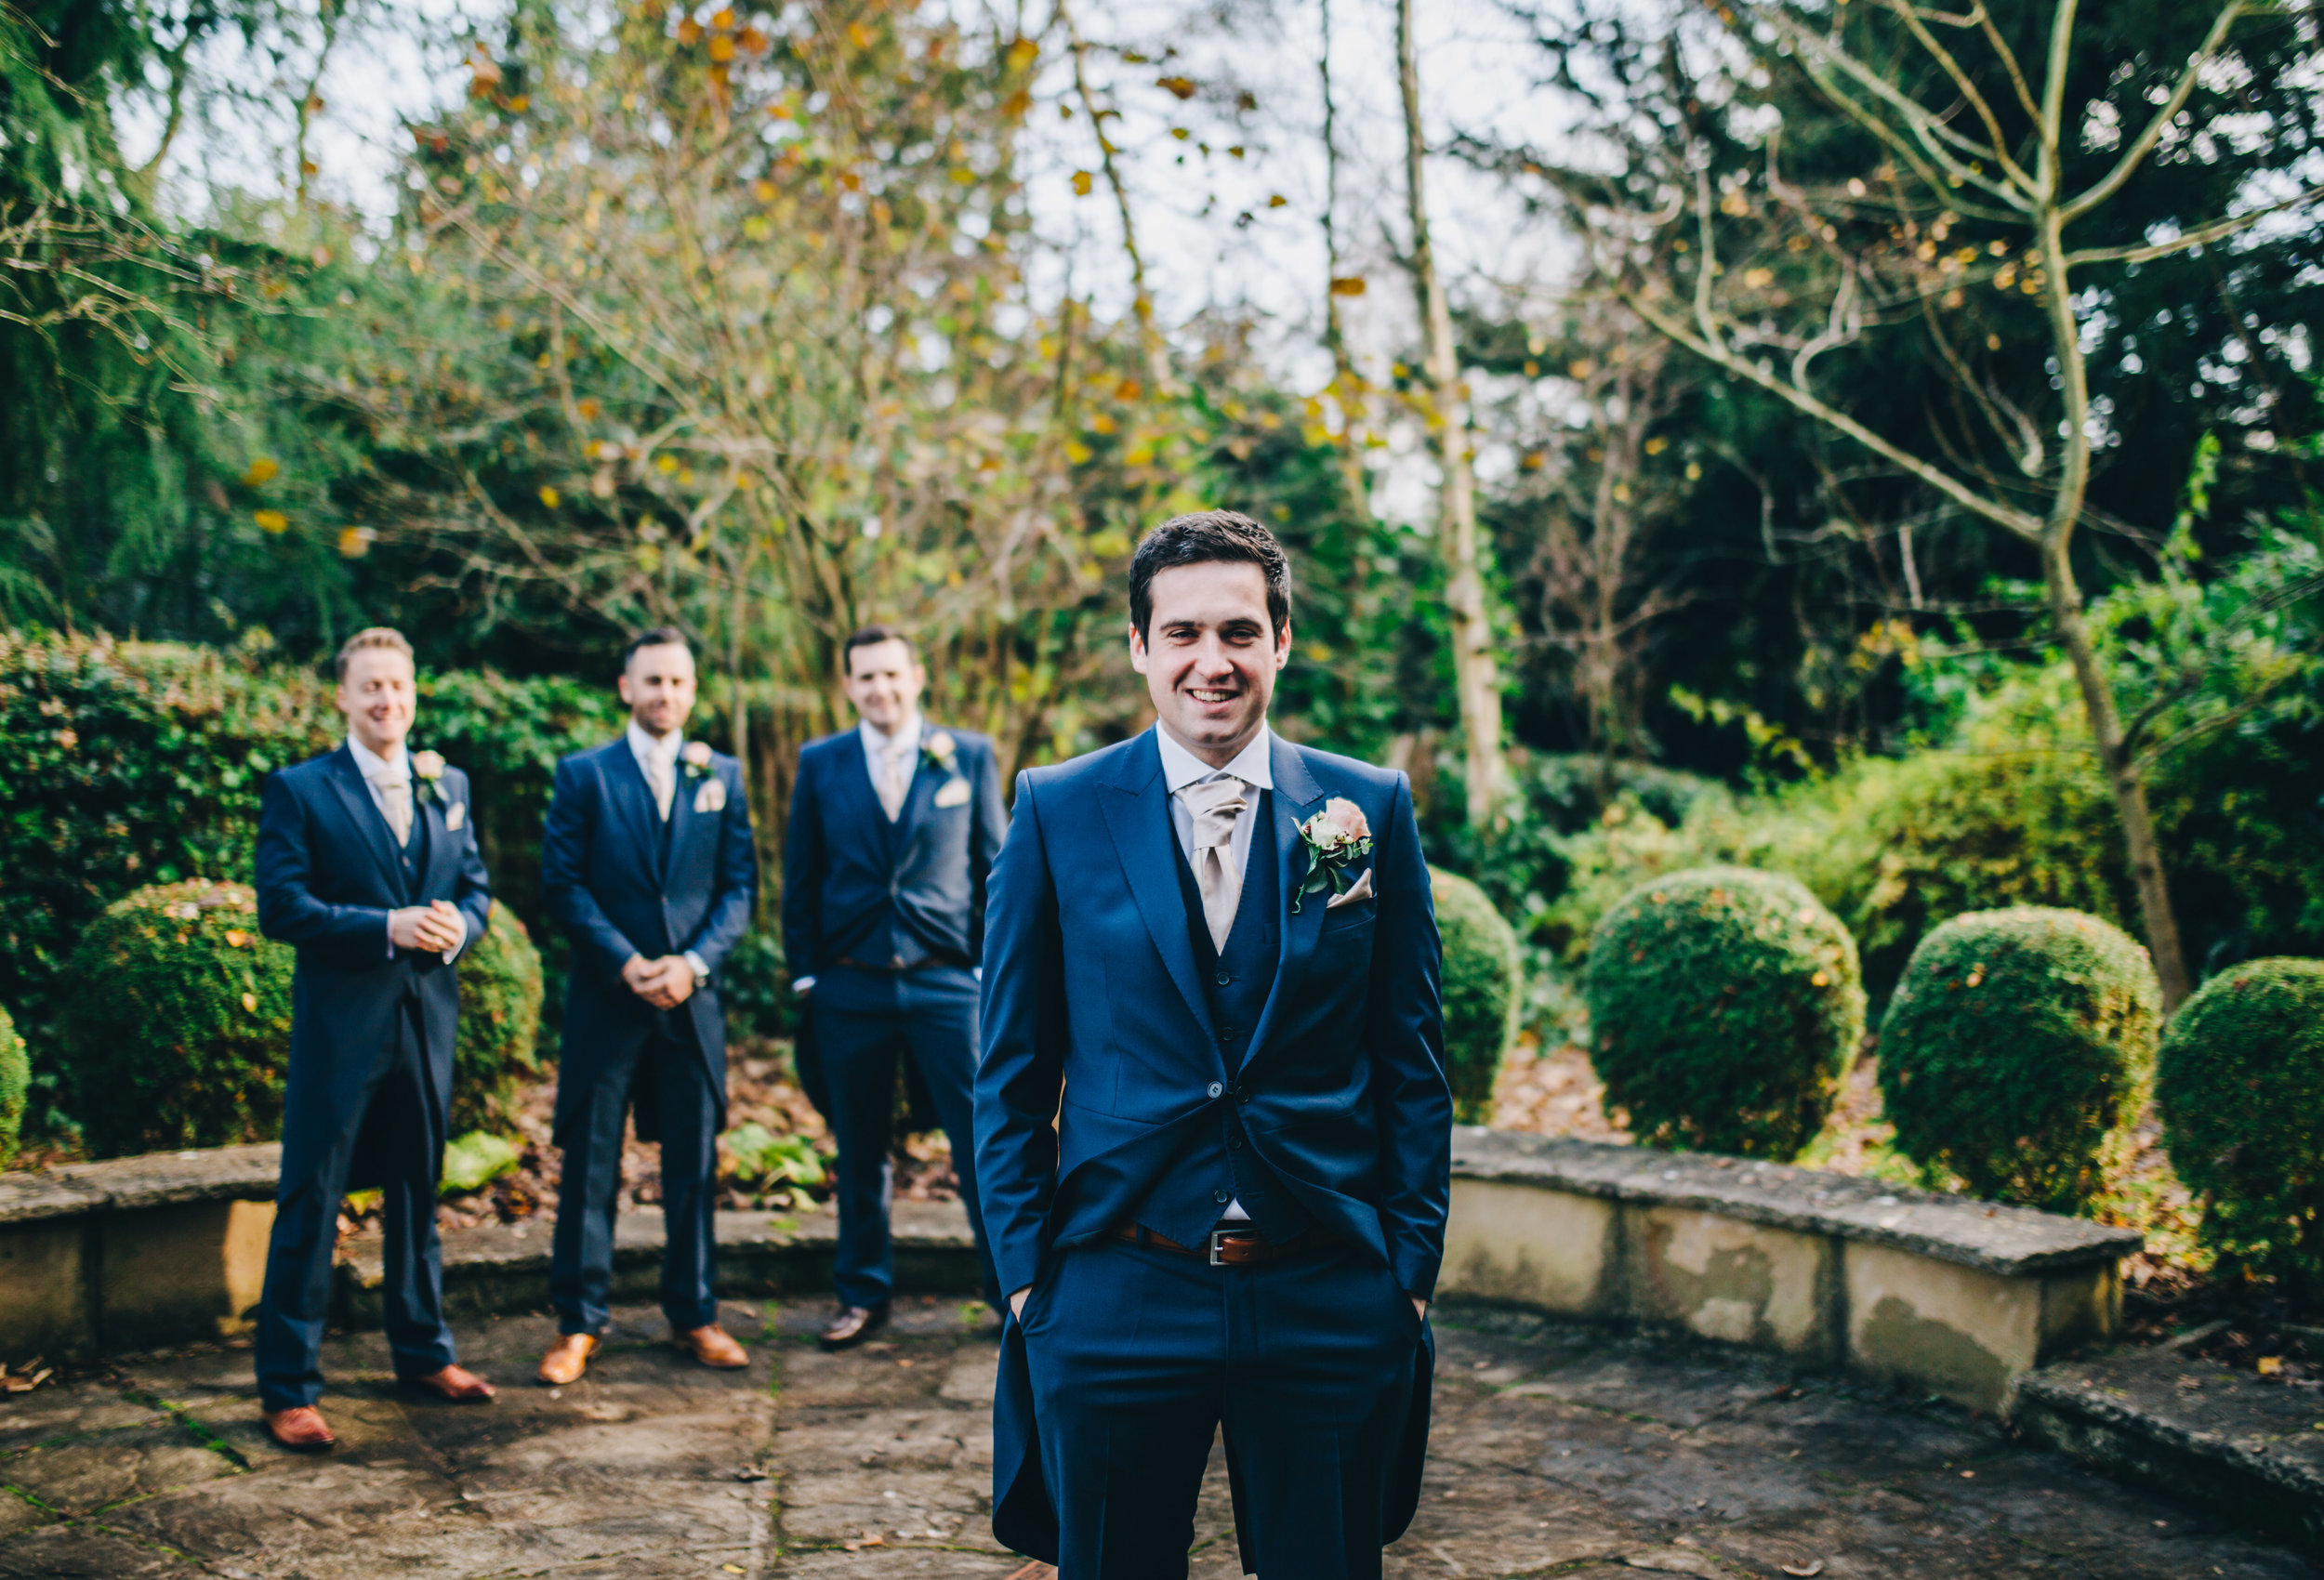 groom and groomsmen outside church - shropshire wedding photographer